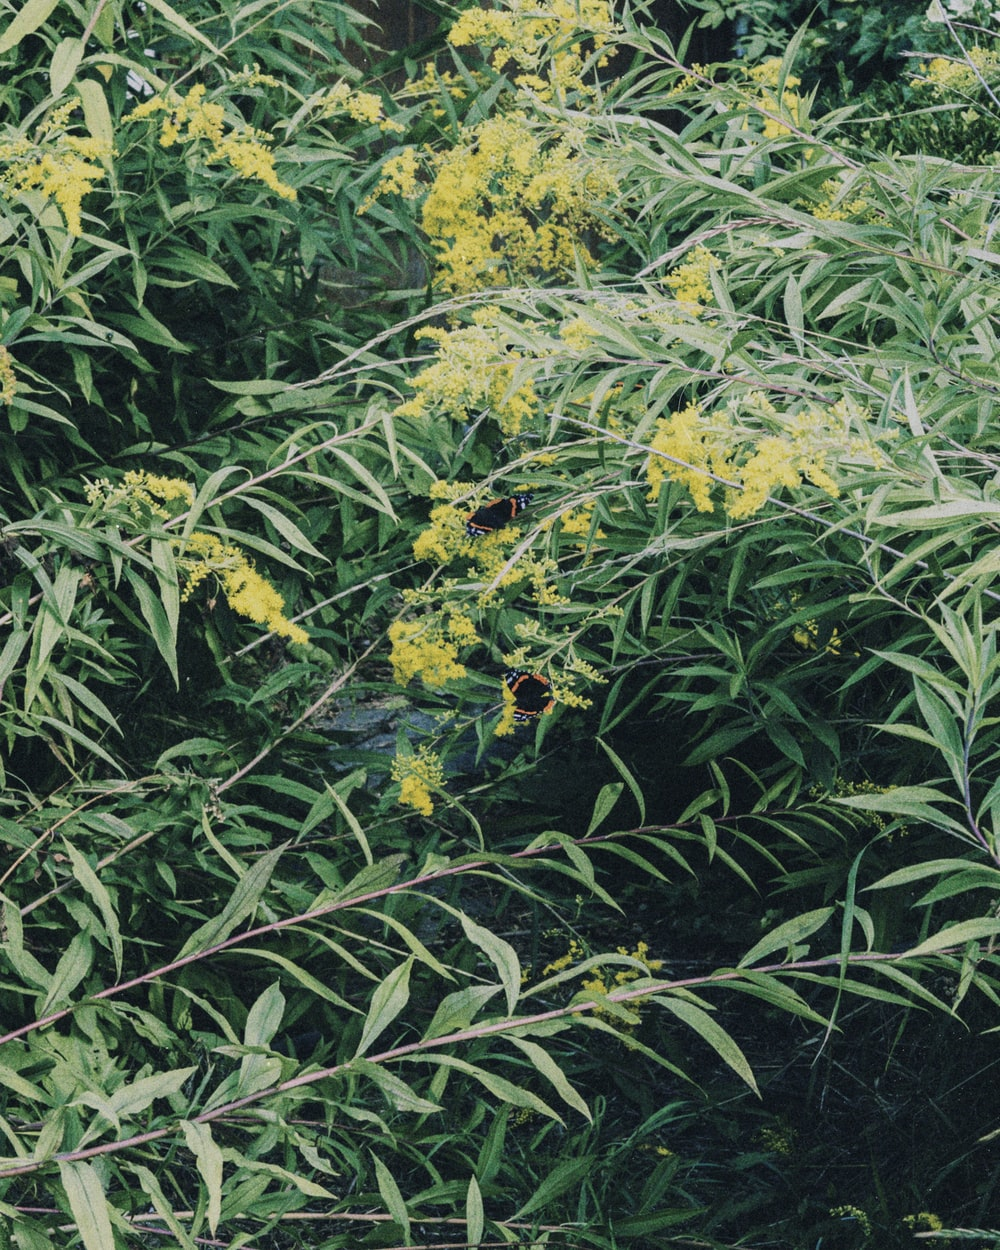 green and yellow plant with flowers